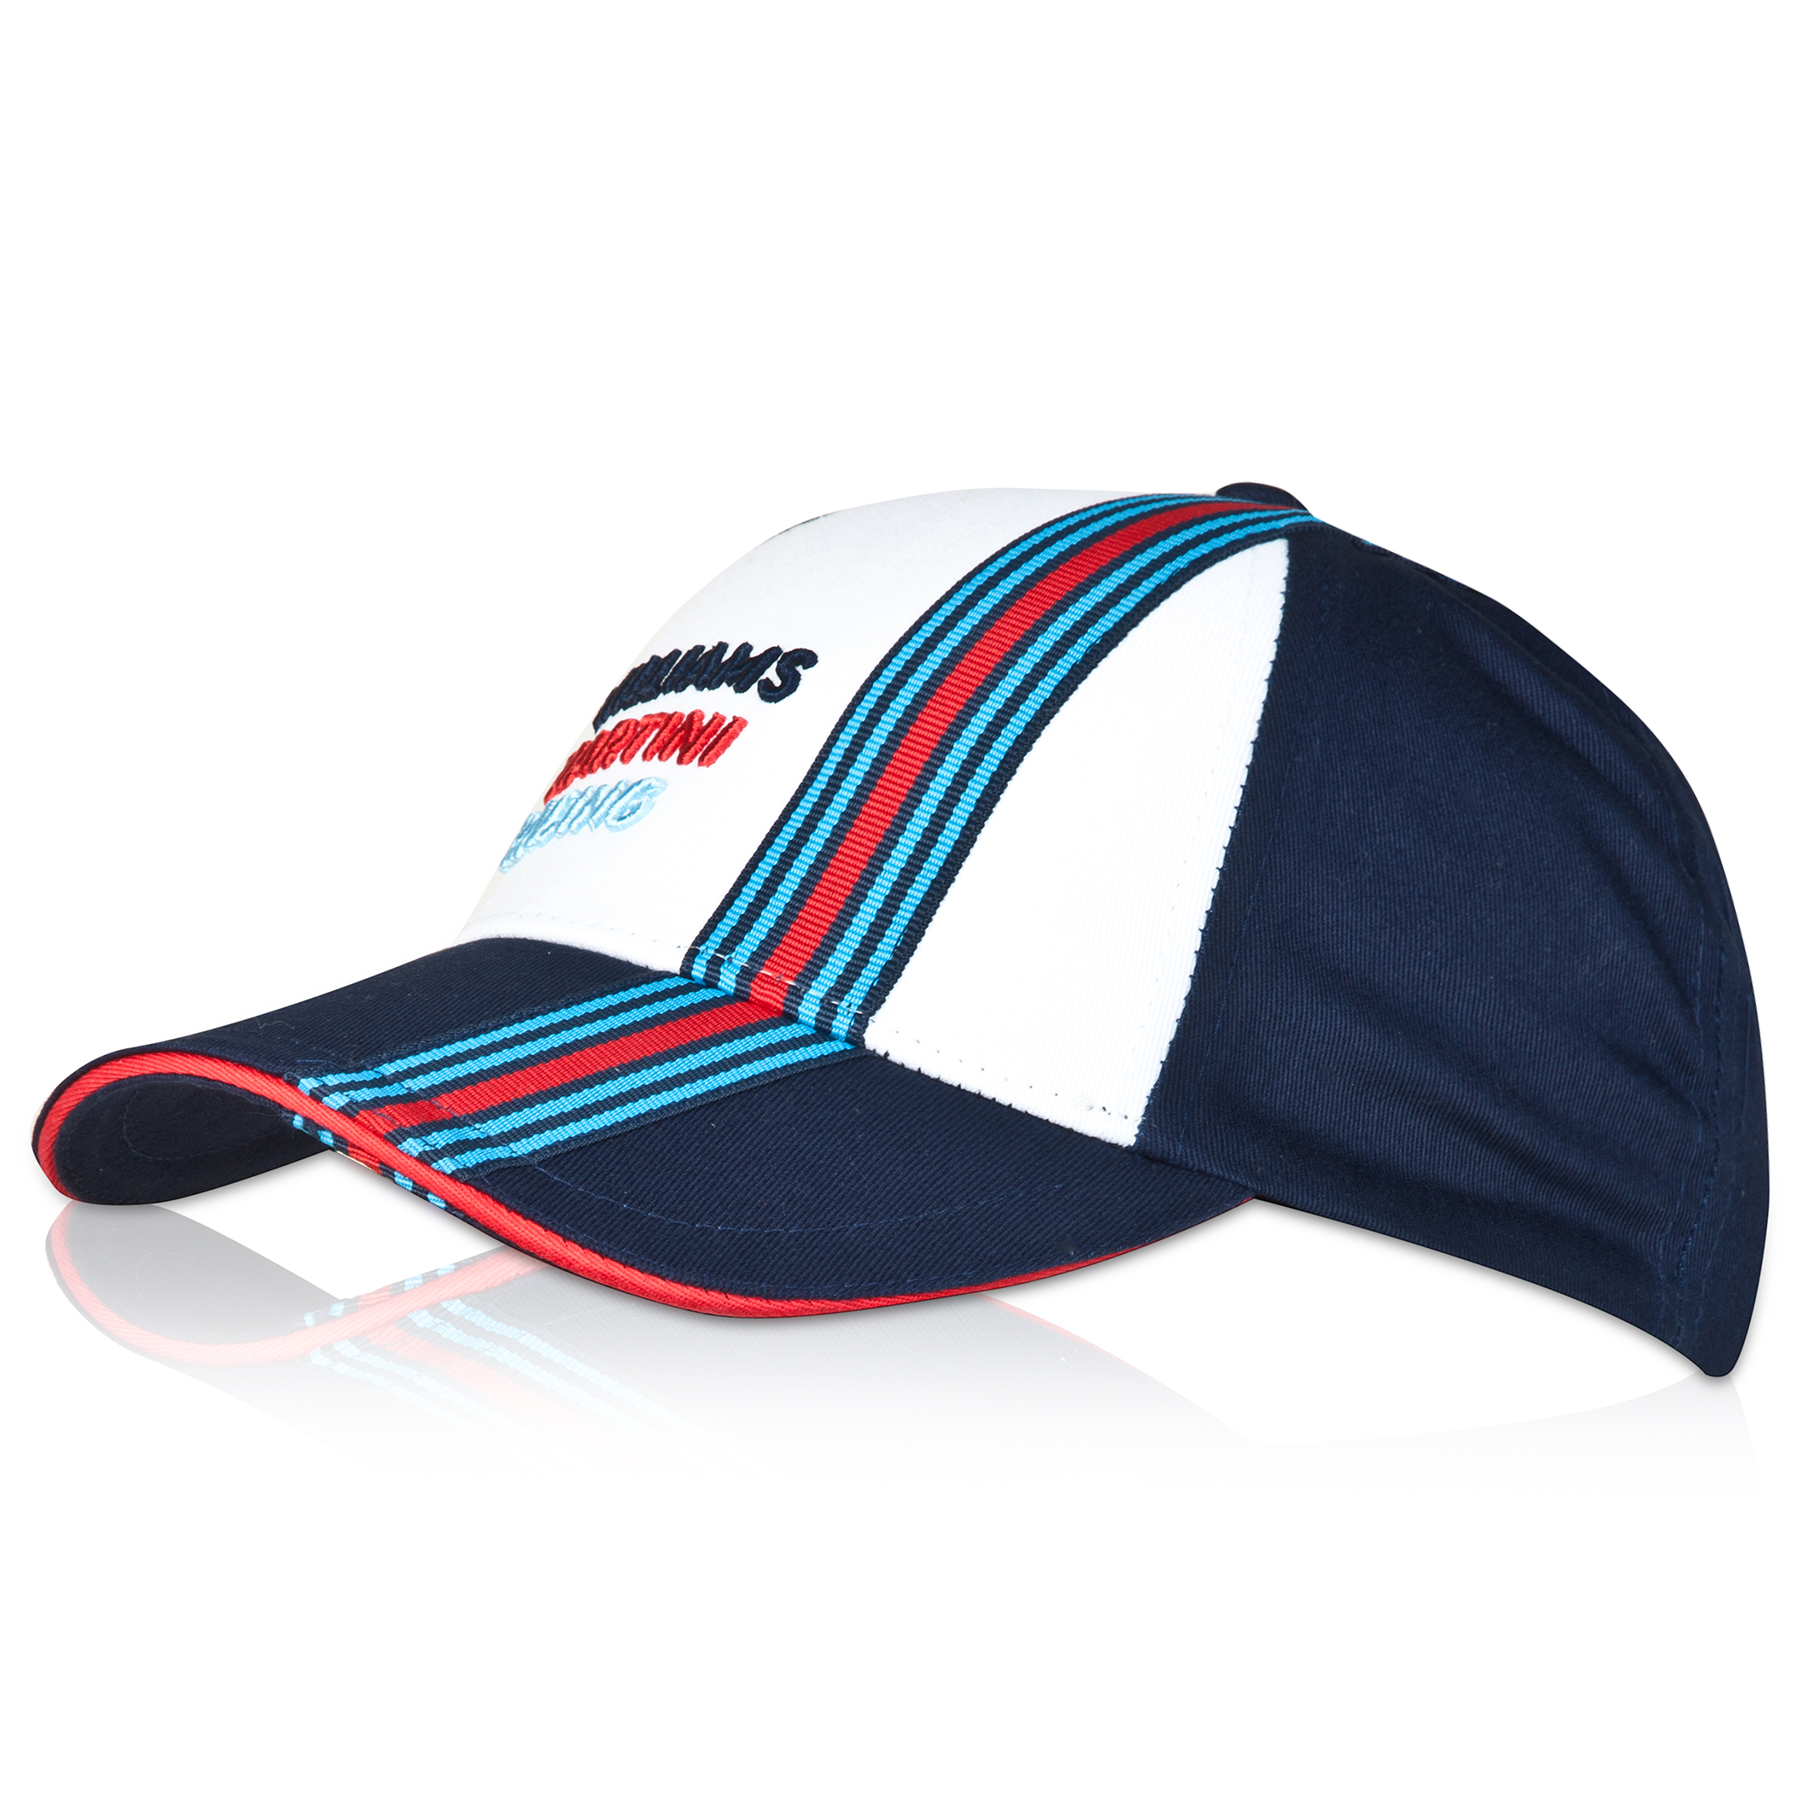 Williams Martini F1 Team Replica Flexfit Cap